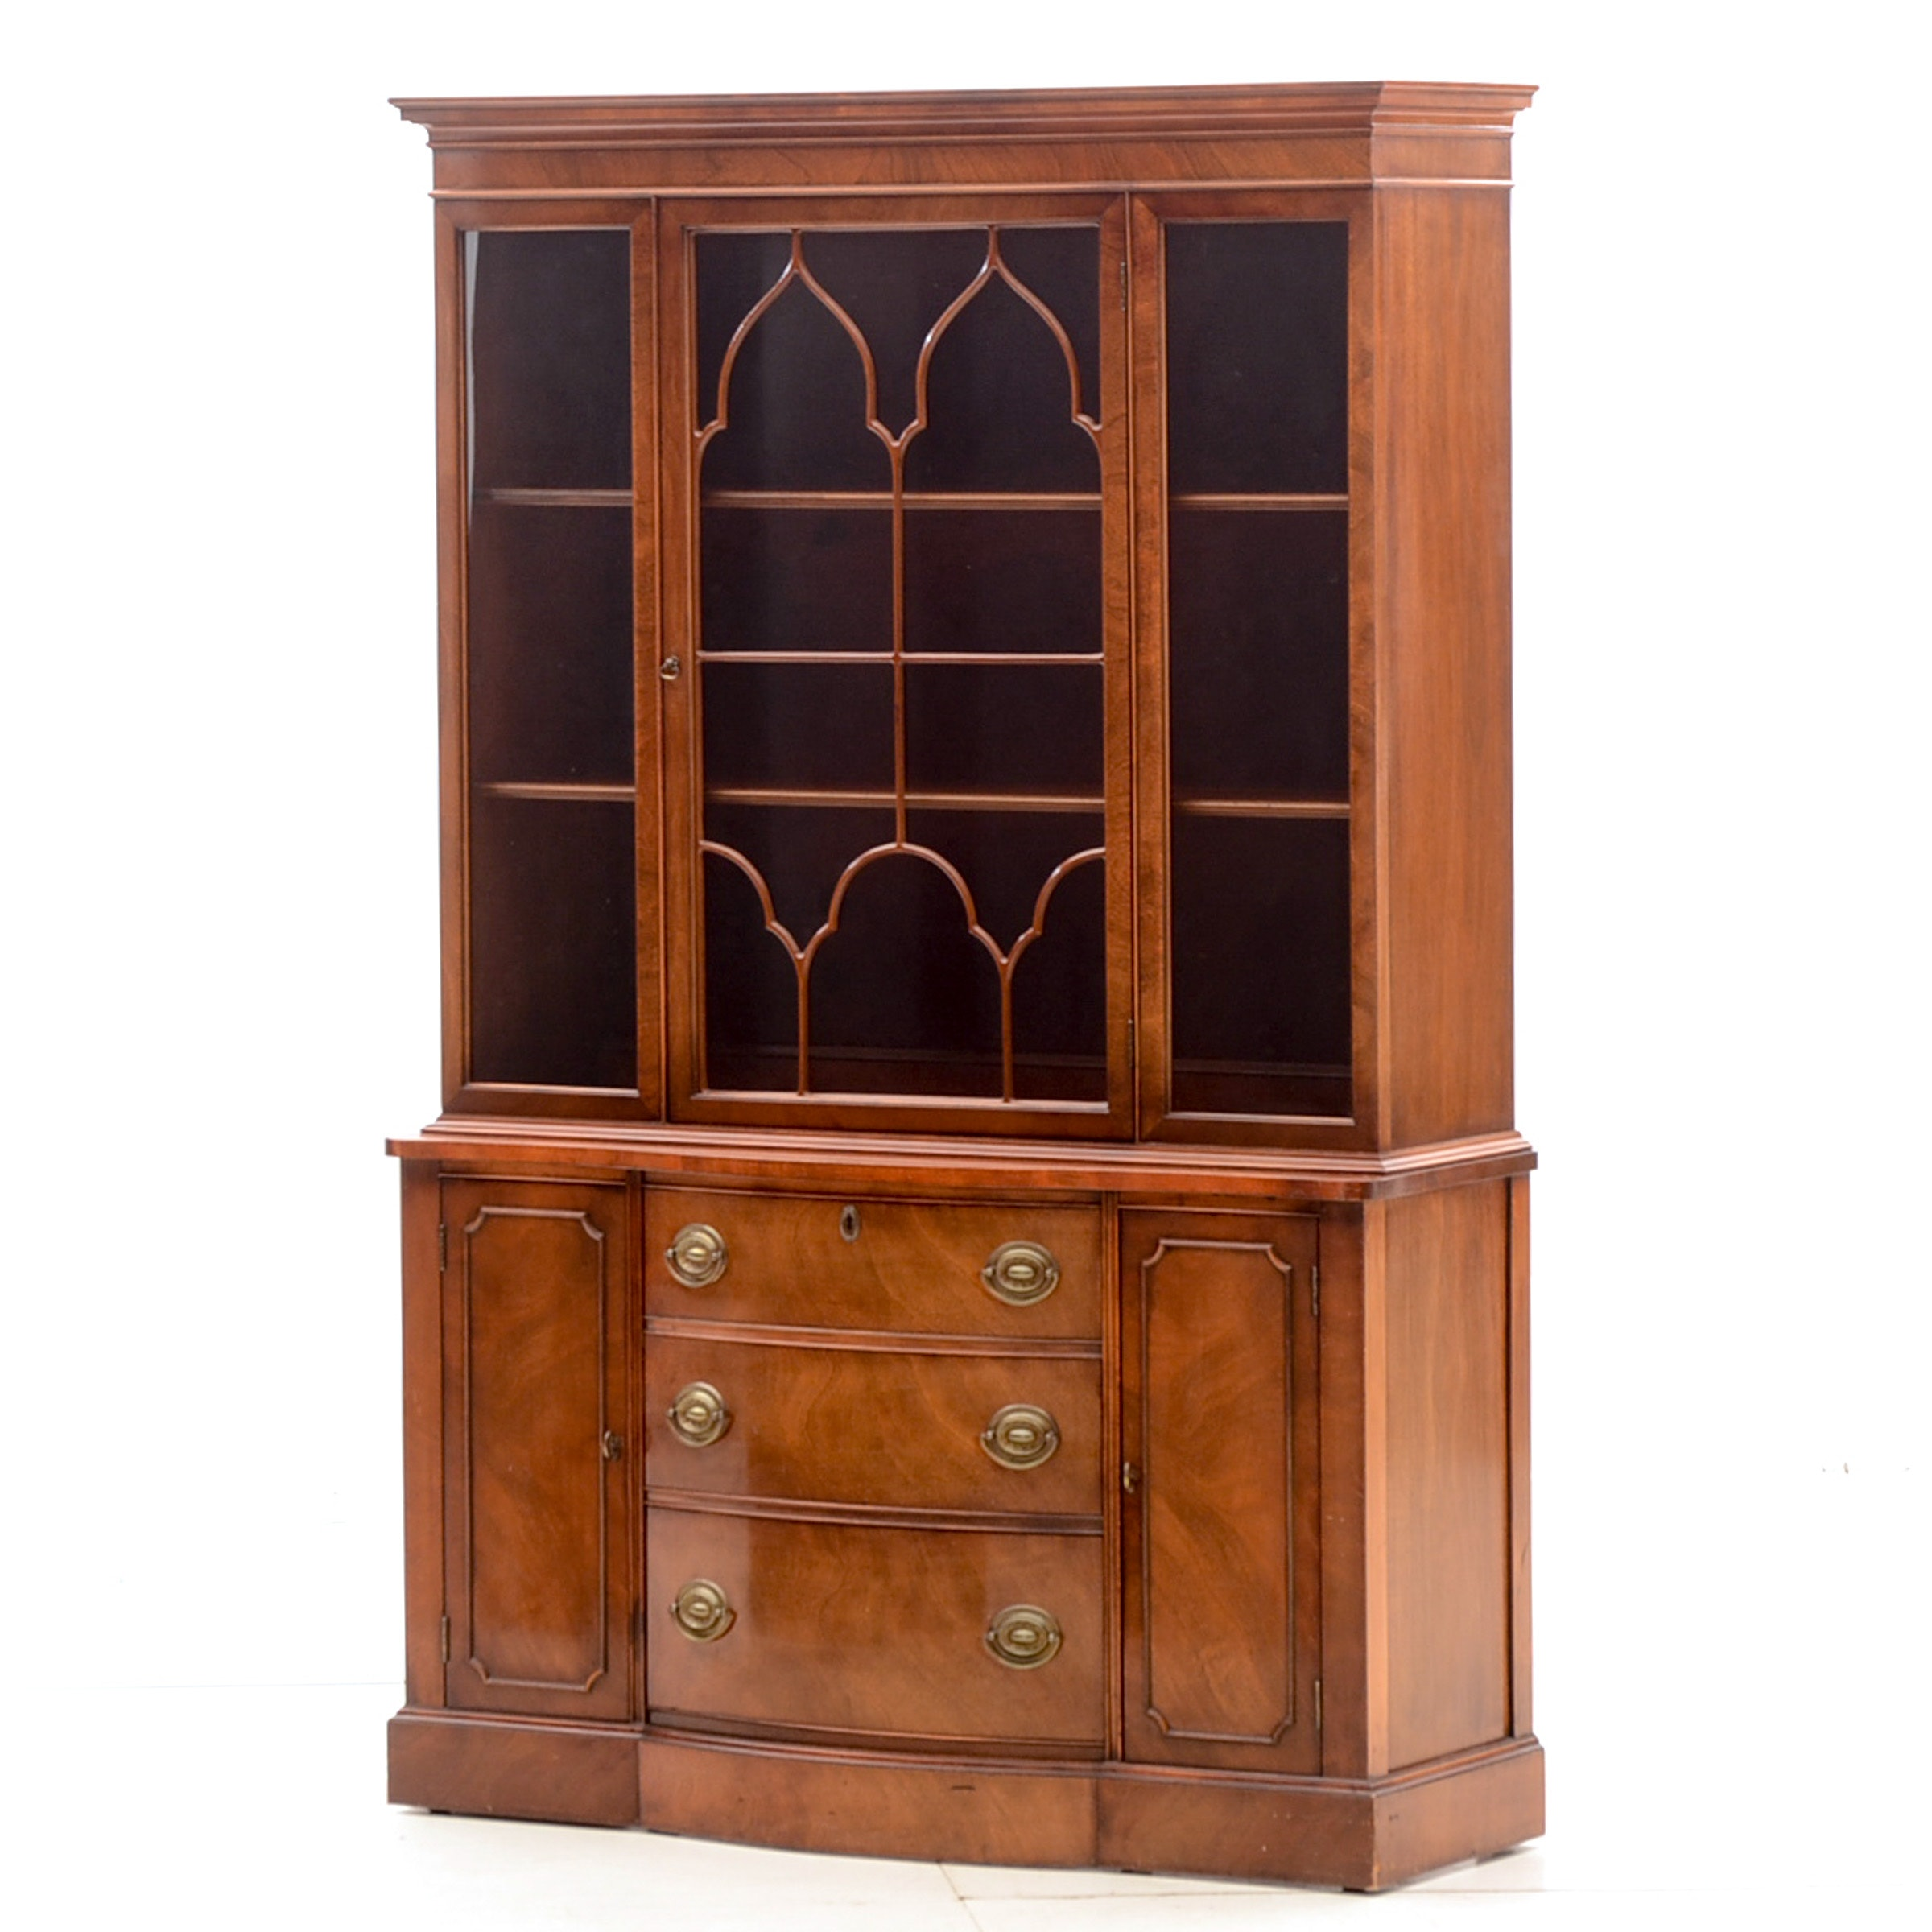 Duncan Phyfe Style Walnut Cabinet